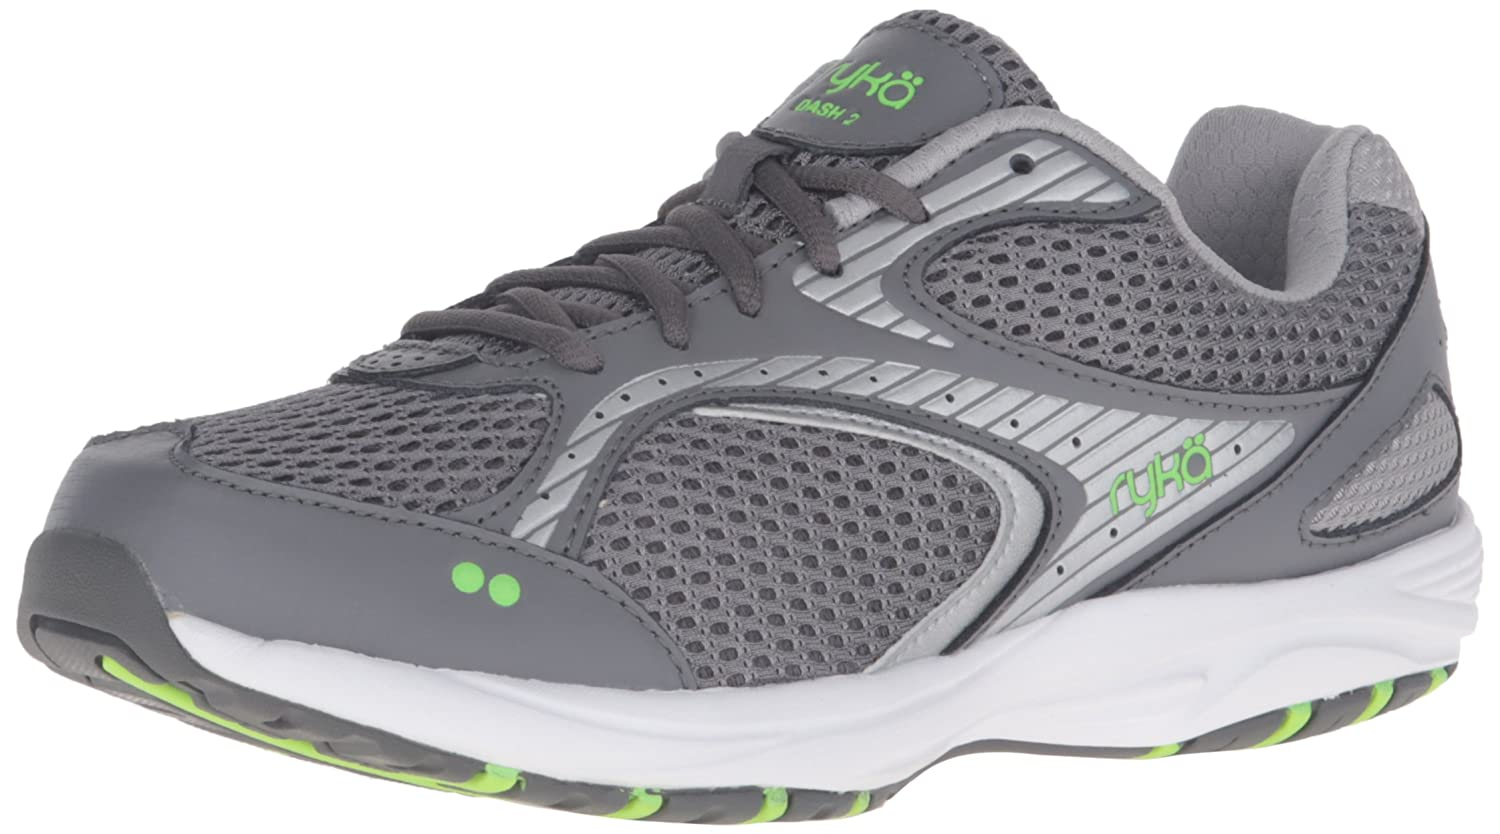 Ryka Women's Dash 2 Walking Shoe B01CF3LO9K 7 B(M) US|Grey/Silver/Lime